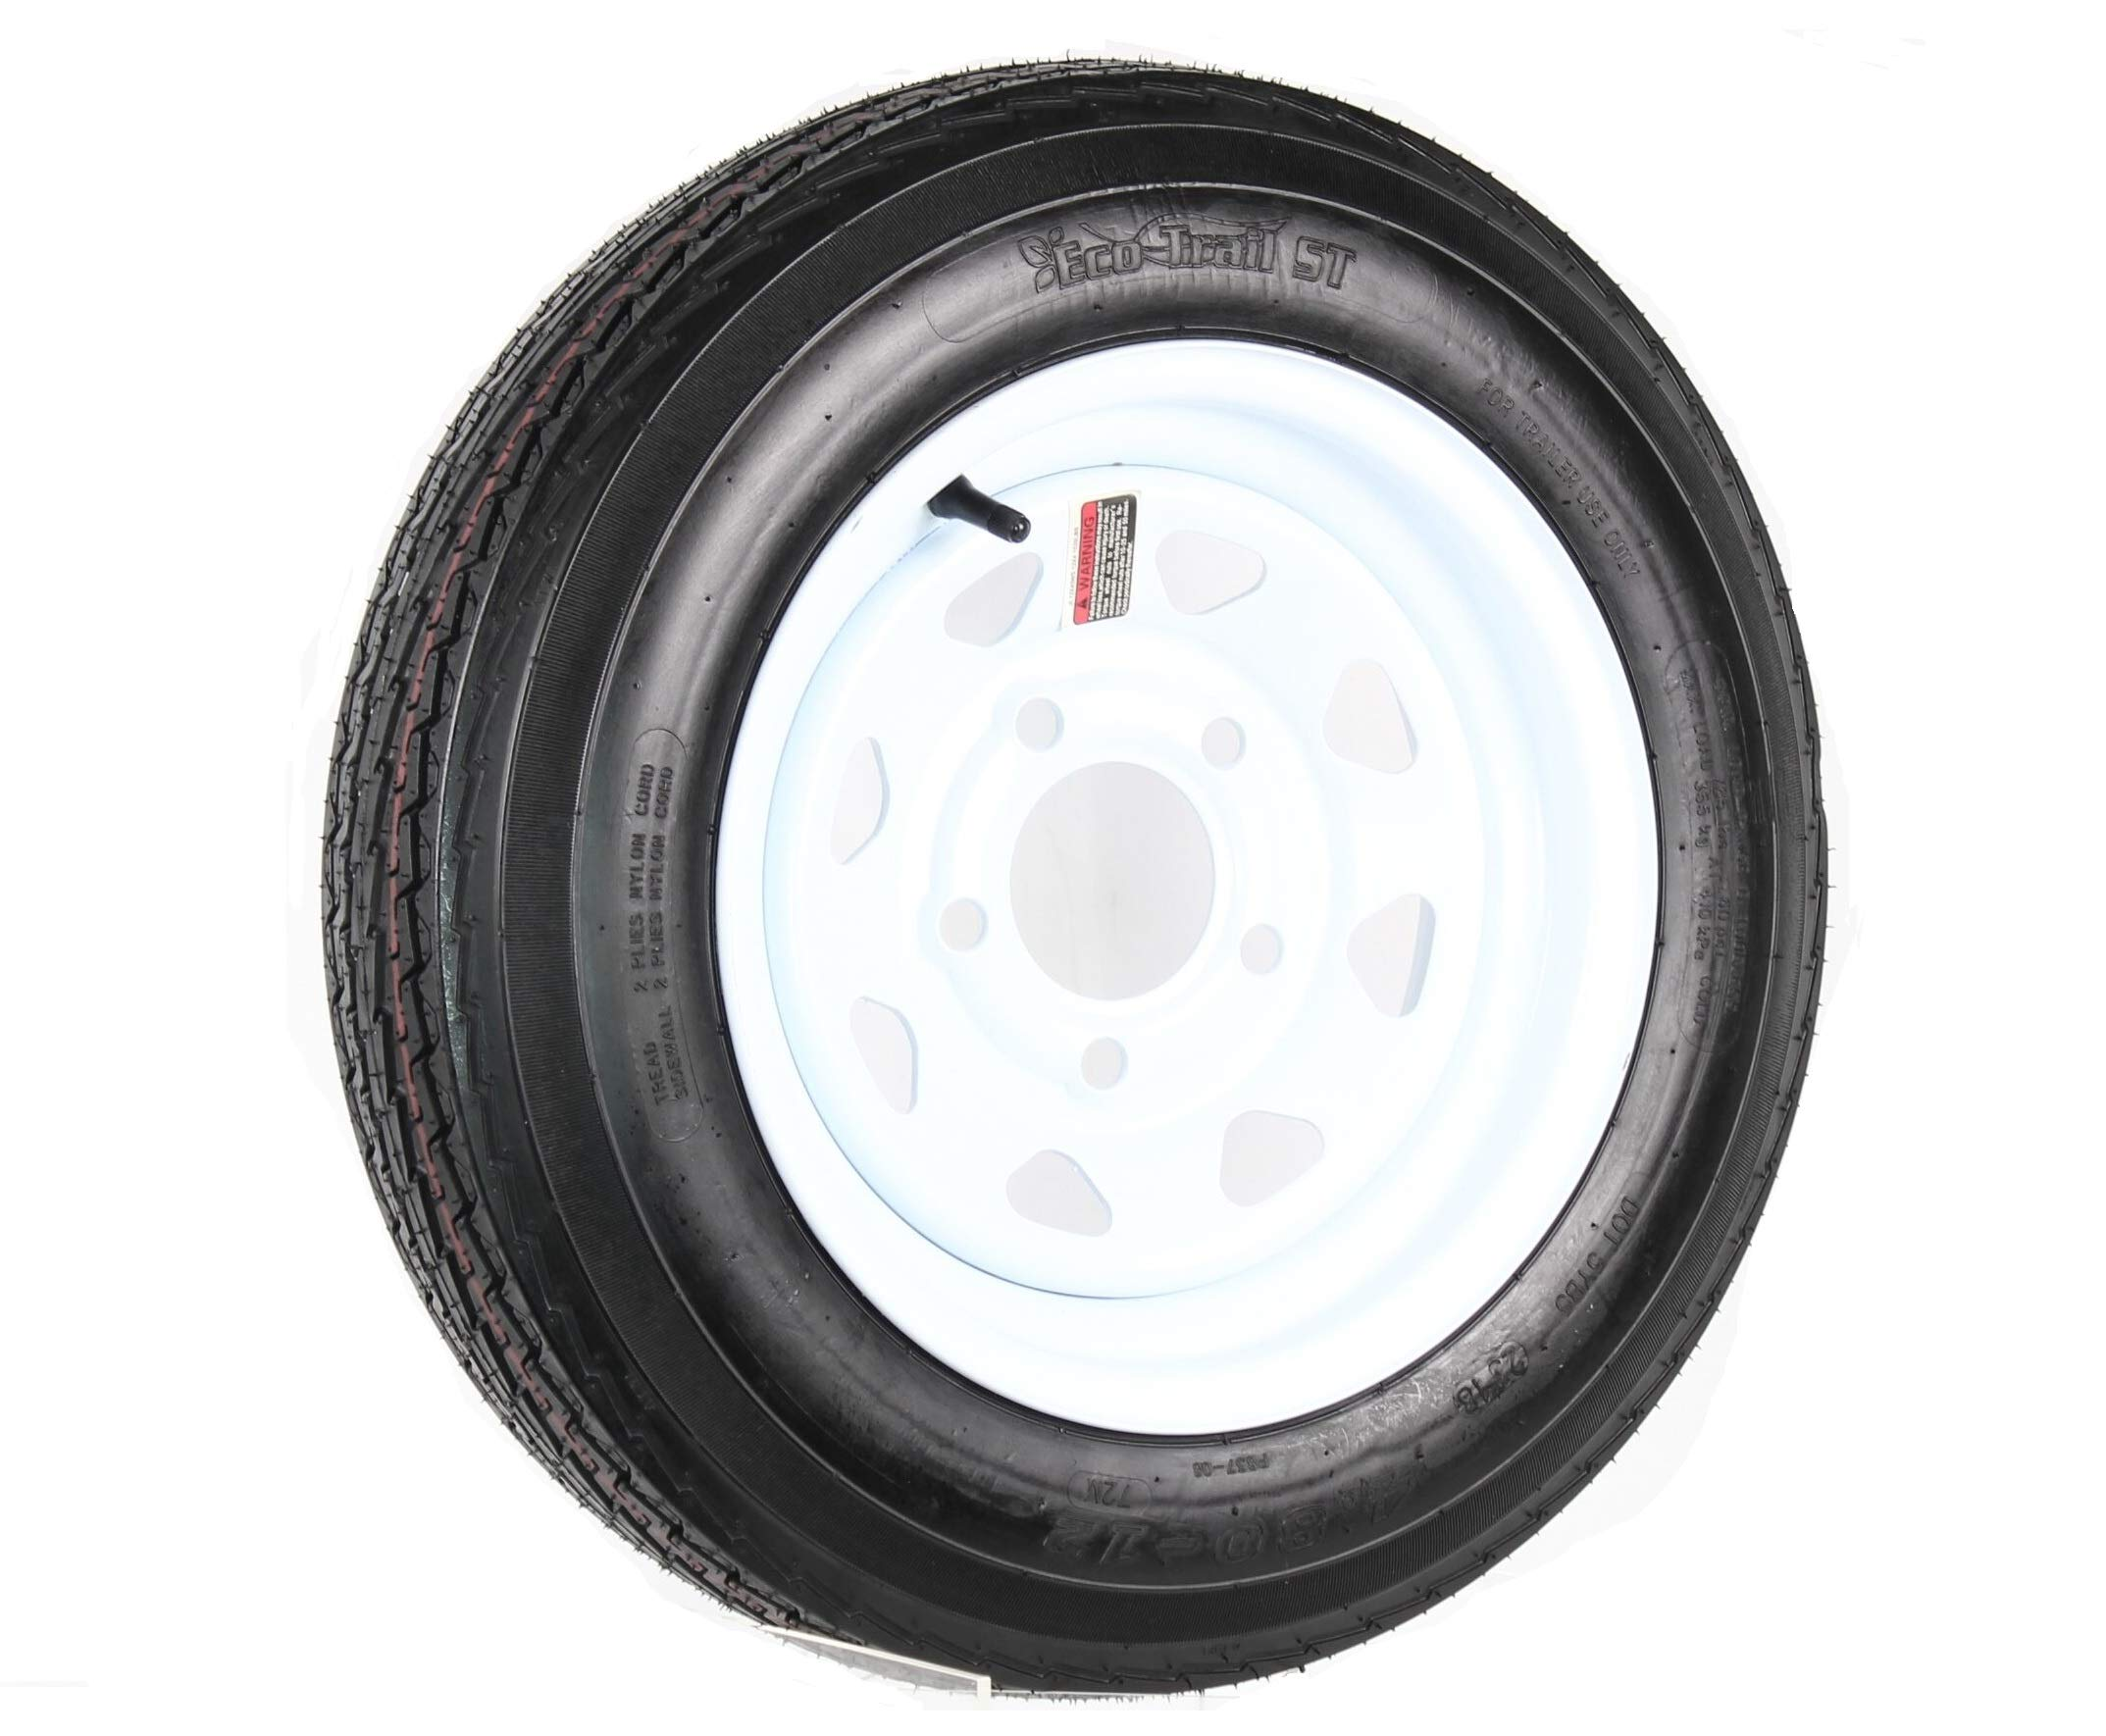 Trailer Tire On Rim 5.30-12 530-12 5.30 X 12 12 in. 5 Lug Hole White Wheel Spoke by eCustomRim